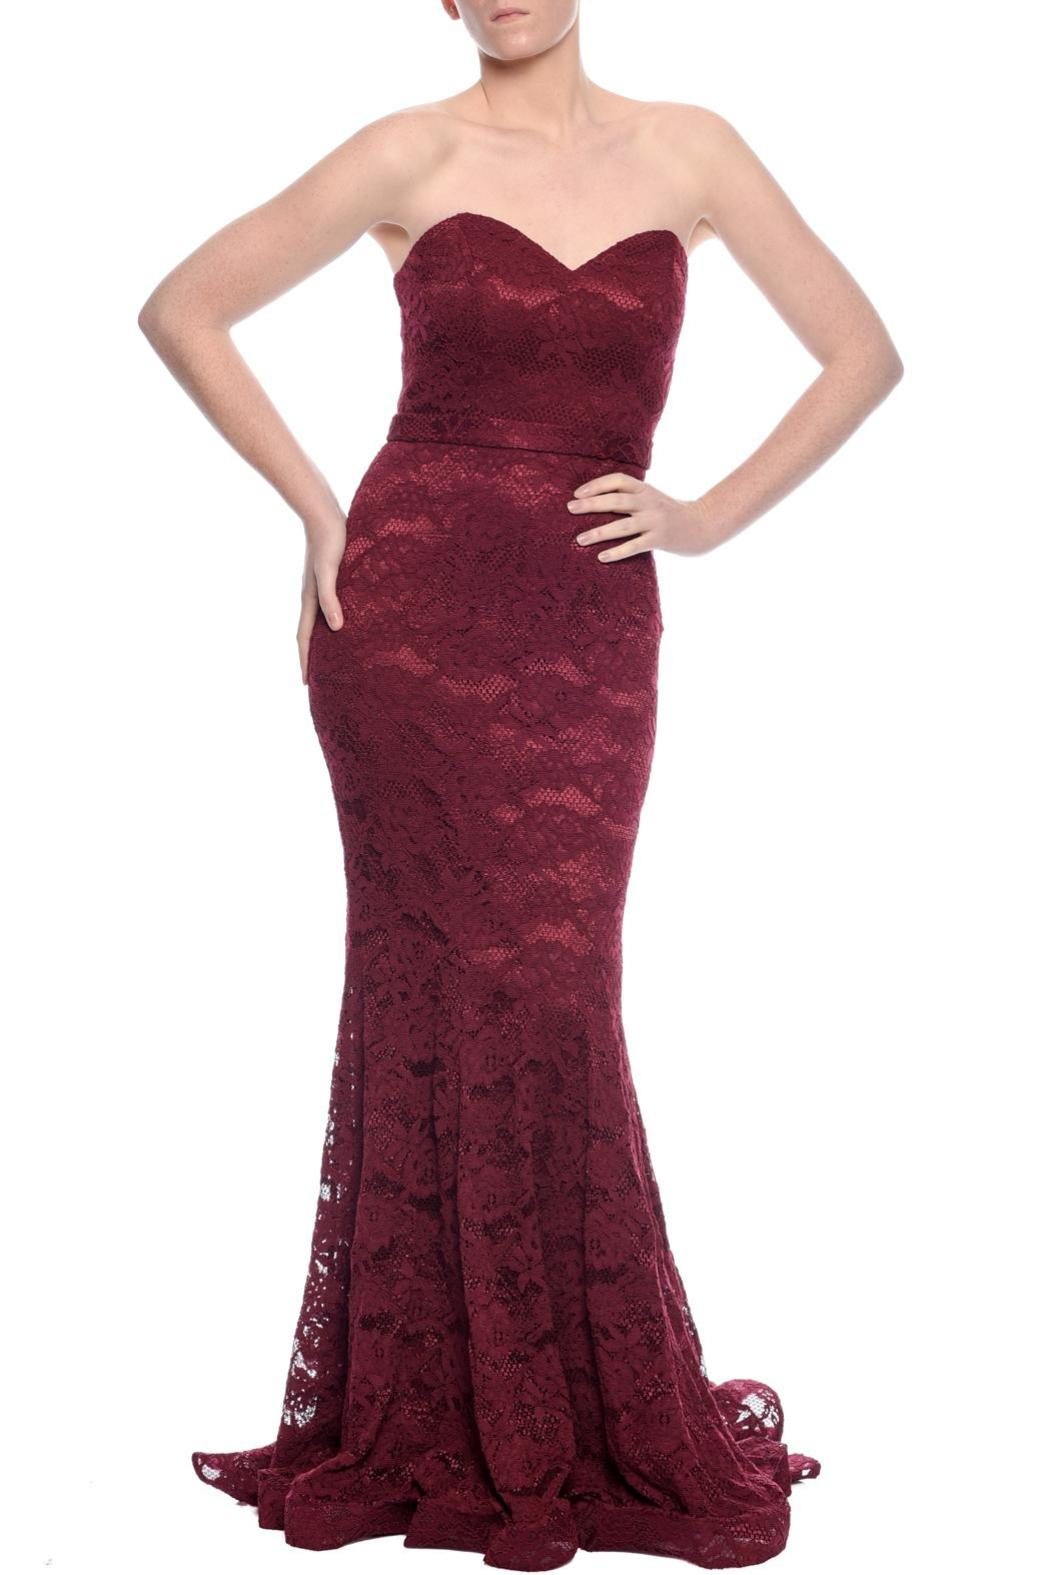 Jadore Amore Gown From Sydney By Windsor And Lux Shoptiques